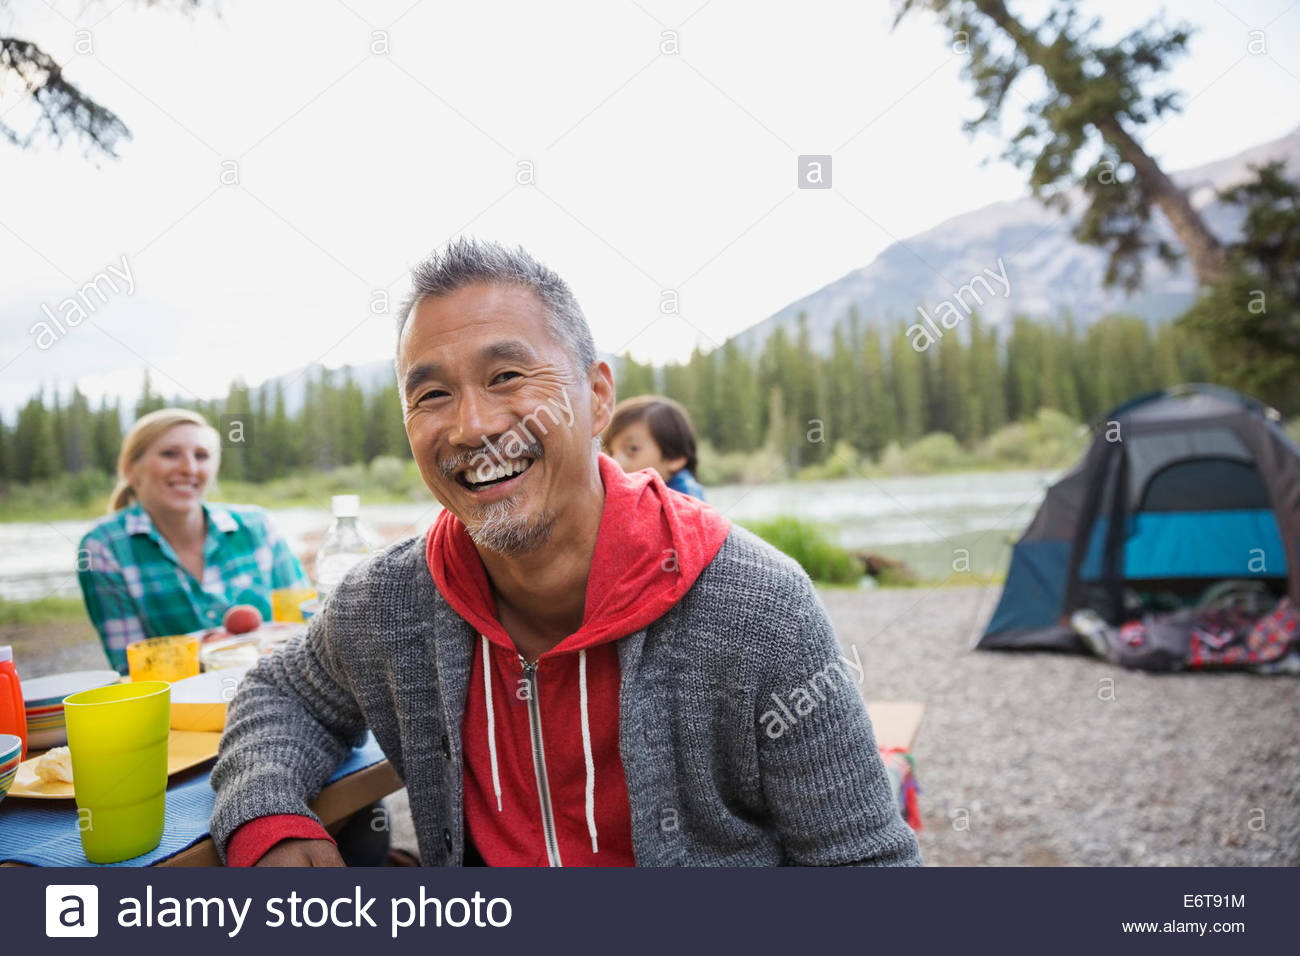 Man smiling at picnic table at campsite - Stock Image